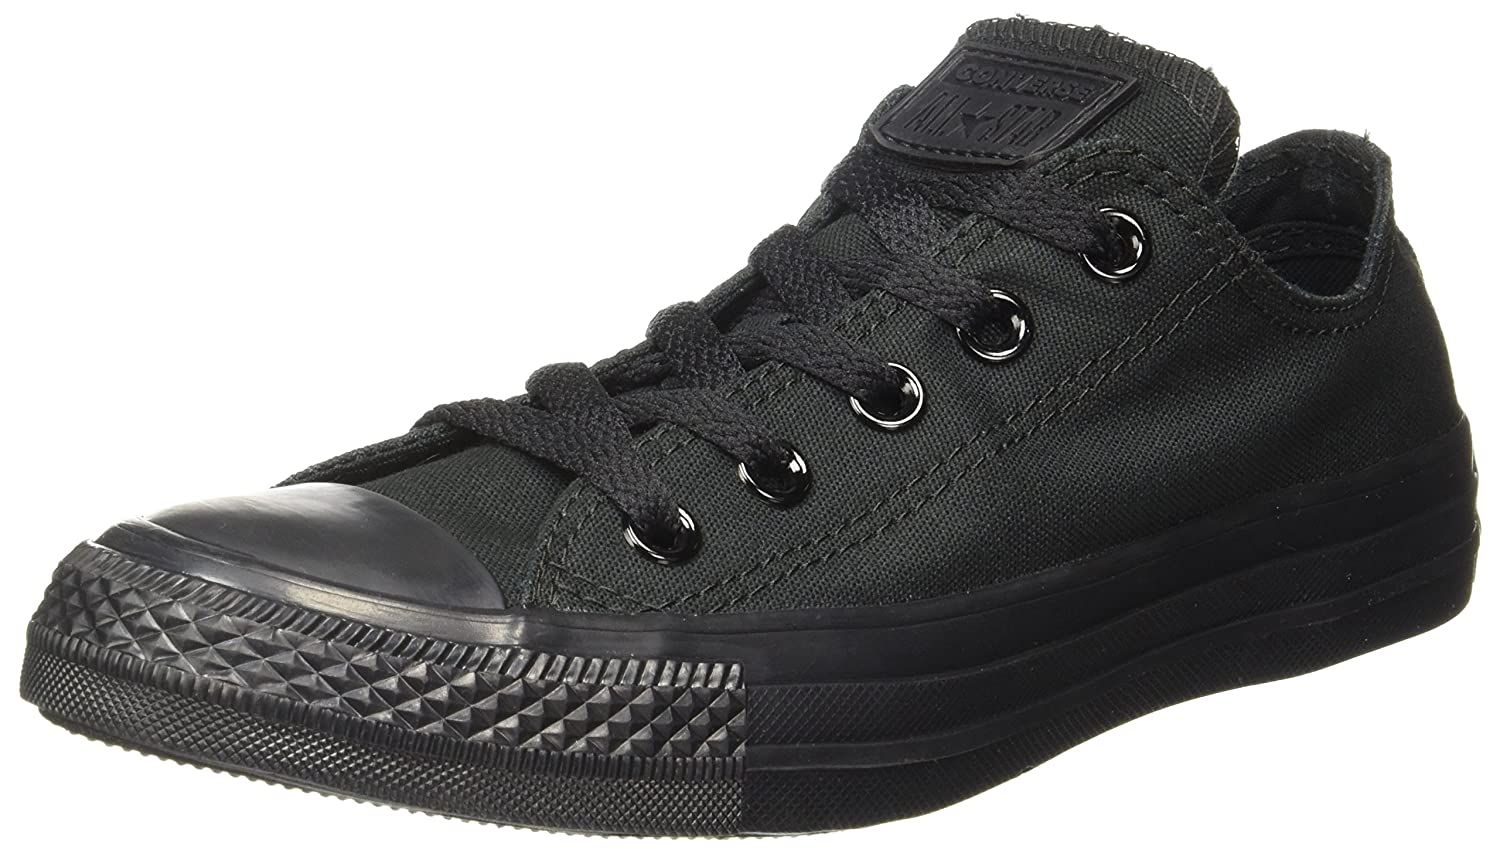 039271eb8a34 Converse Unisex Canvas Sneakers  Buy Online at Low Prices in India -  Amazon.in